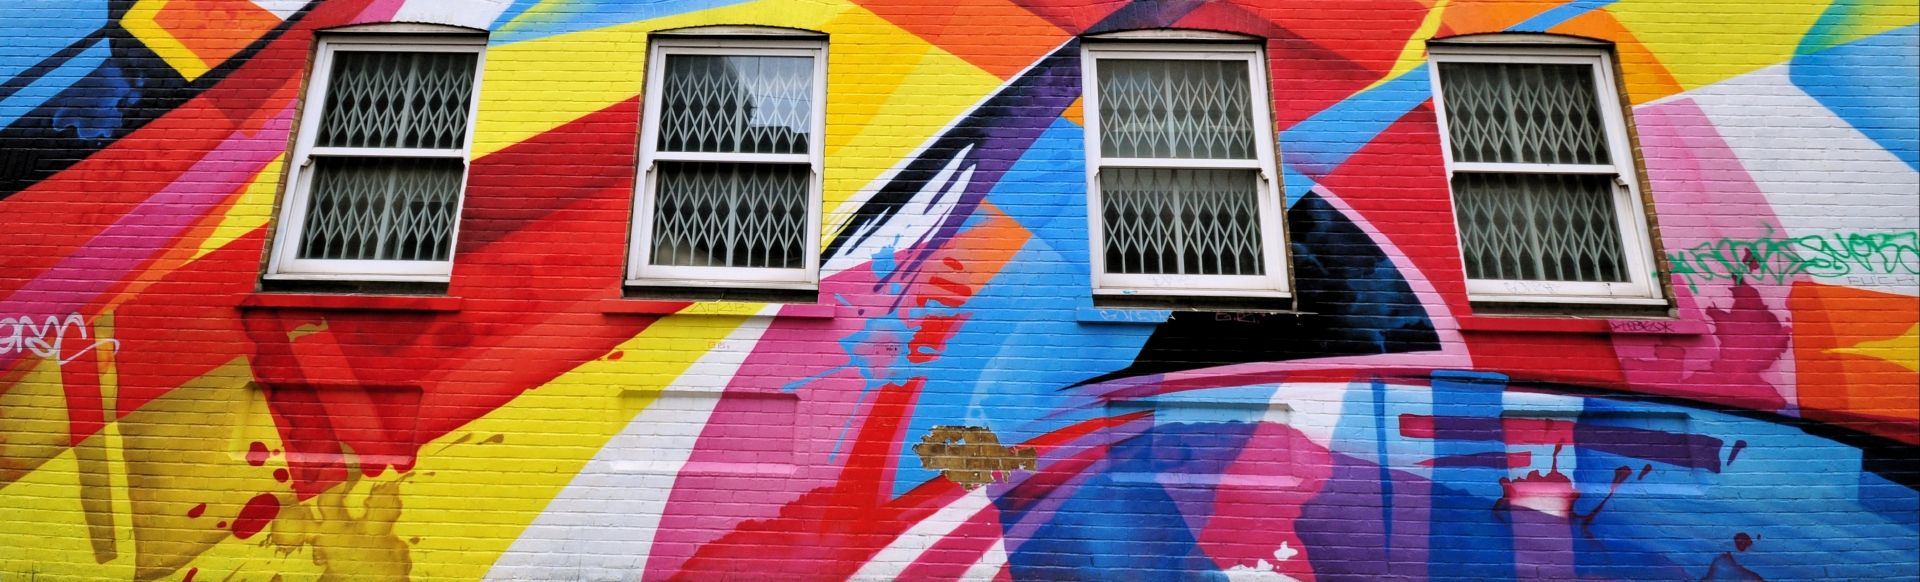 Abstract street art by artist Reka in Shoreditch takes over an entire building façade.